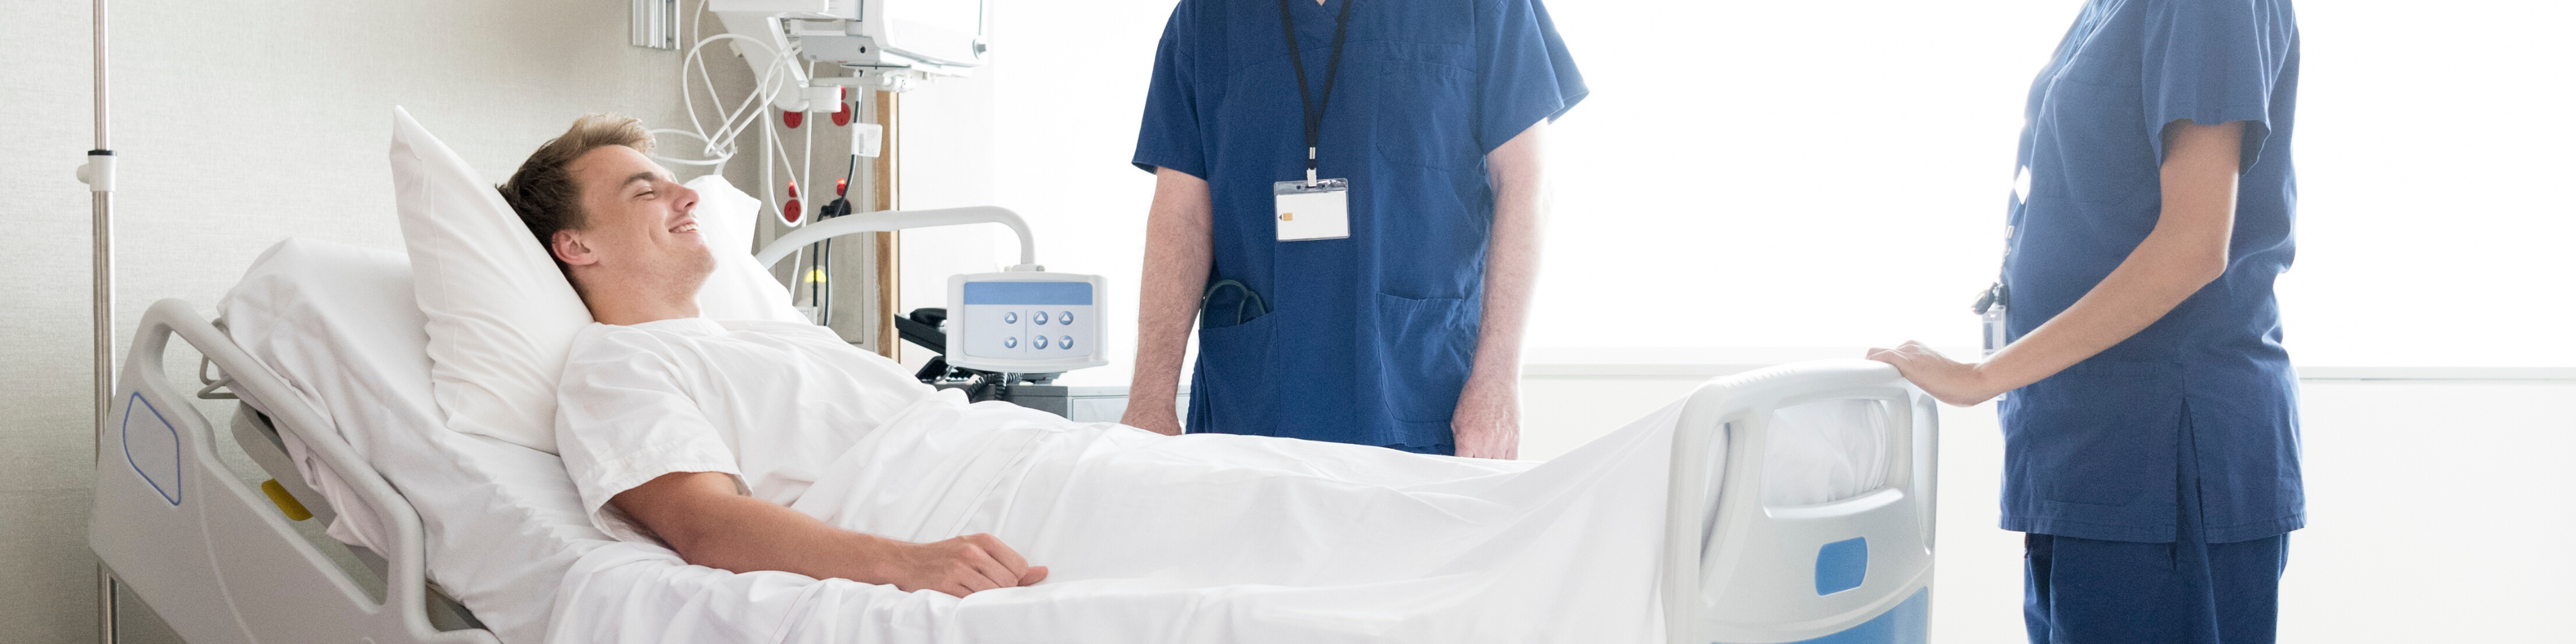 Guide: Best practices for improving sepsis care and outcomes